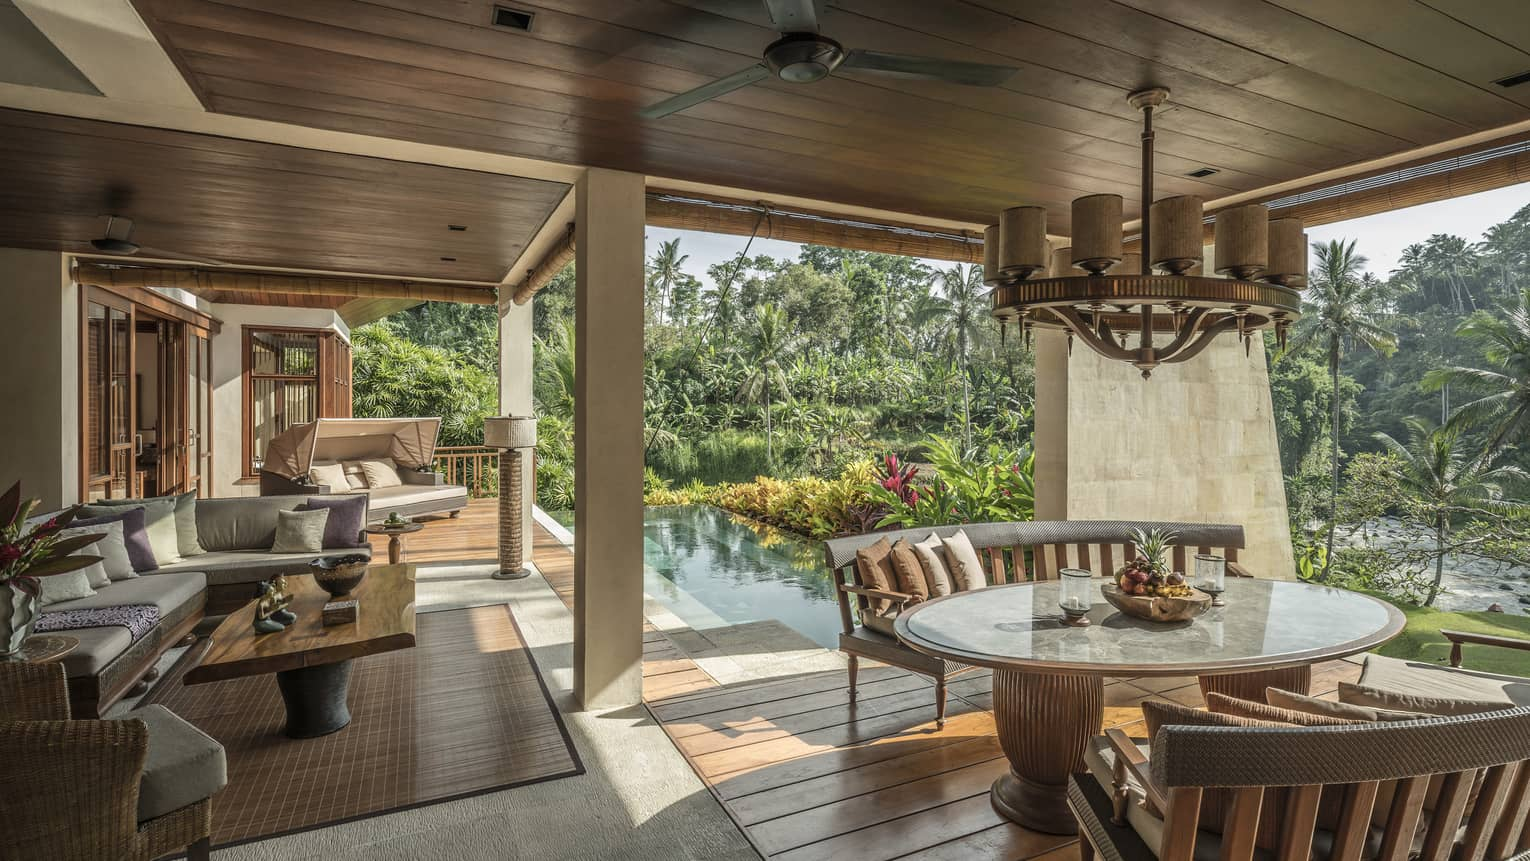 A villa with an outdoor patio and an infinity pool overlooking a river in Bali